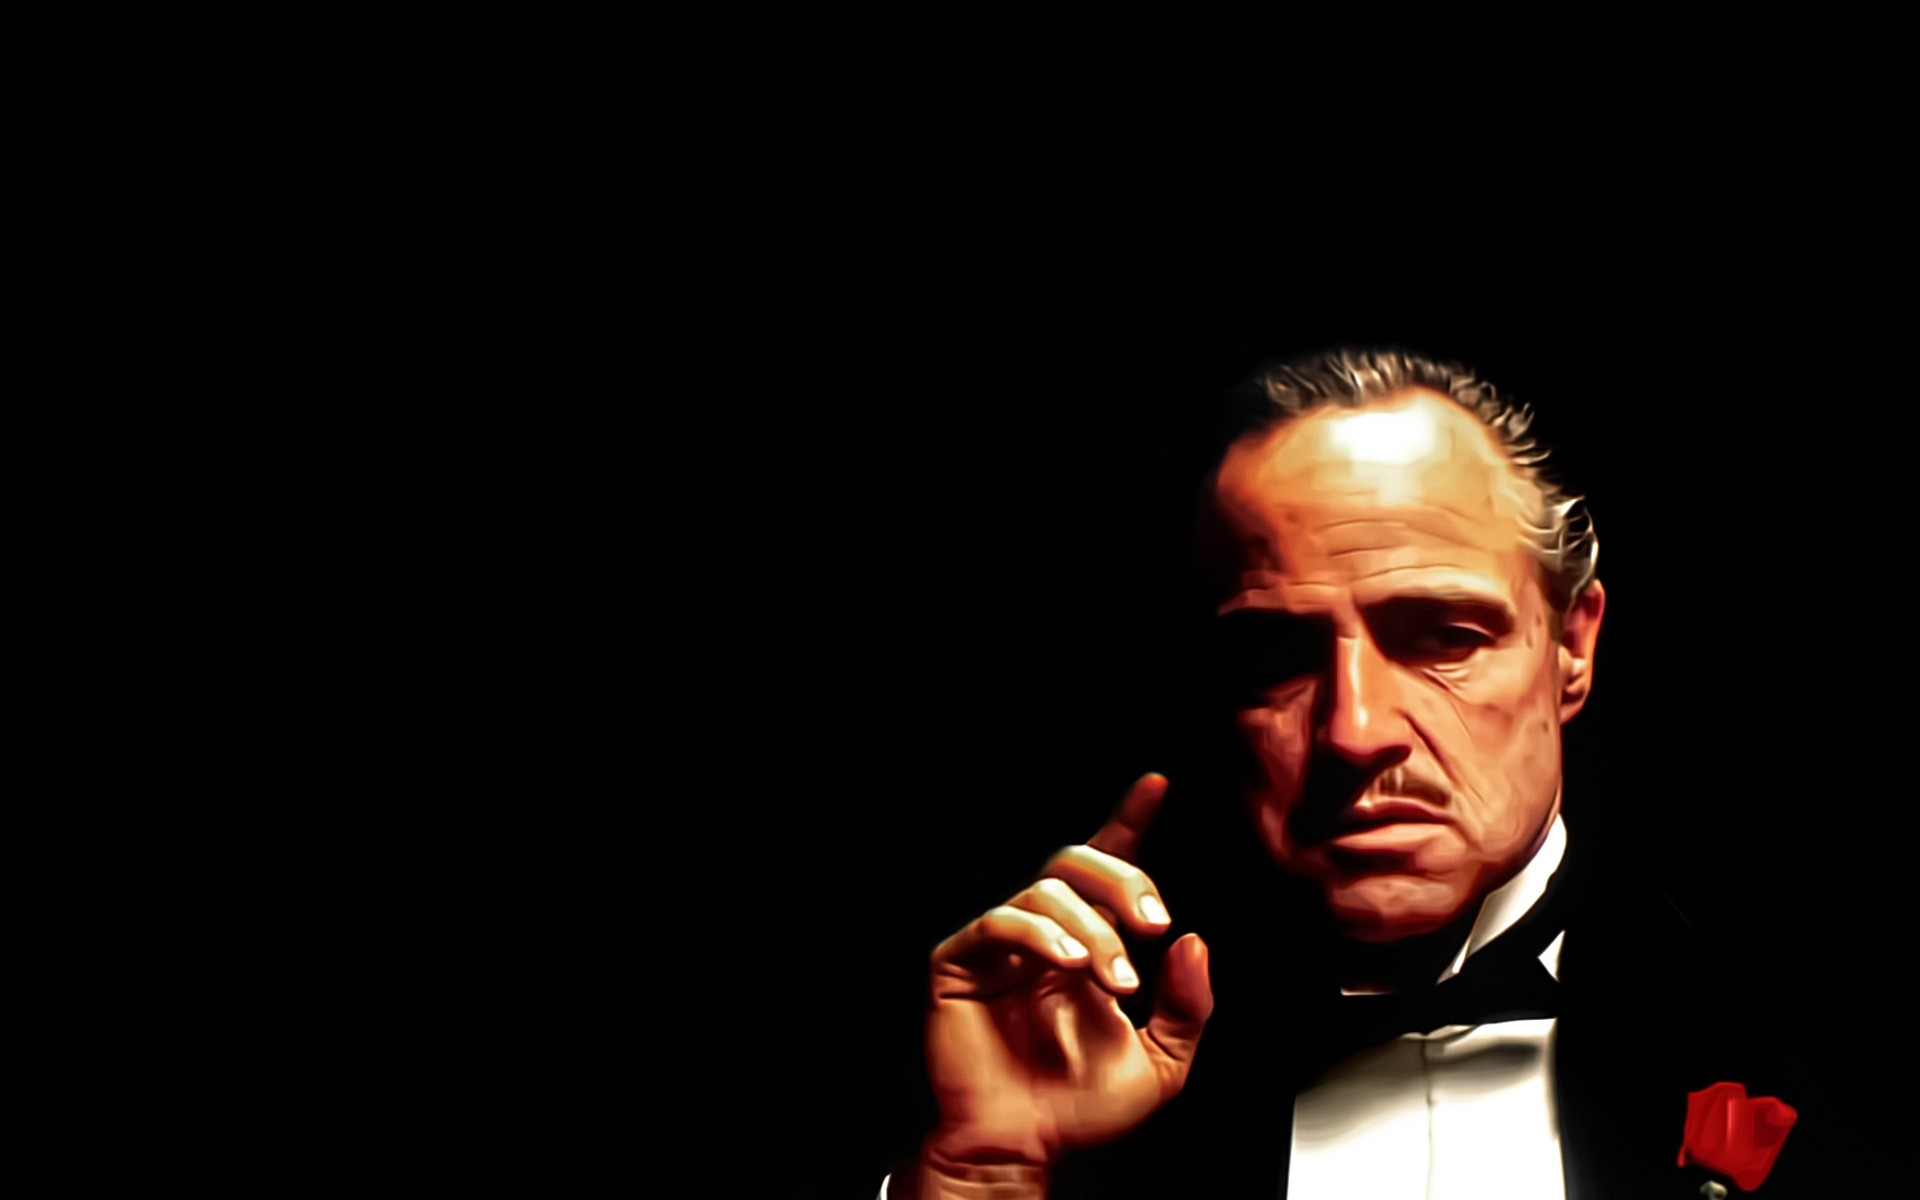 an analysis of the topic of the movie the godfather and the benefits and issues of a gangster theme The godfather: michael vs sonny at a first glance michael and sonny appear to be quite different upon further observation, however, they have some similarities although they are different in areas of personality, values, and their tempers, they are similar in areas of loyalty, their respect for their father.